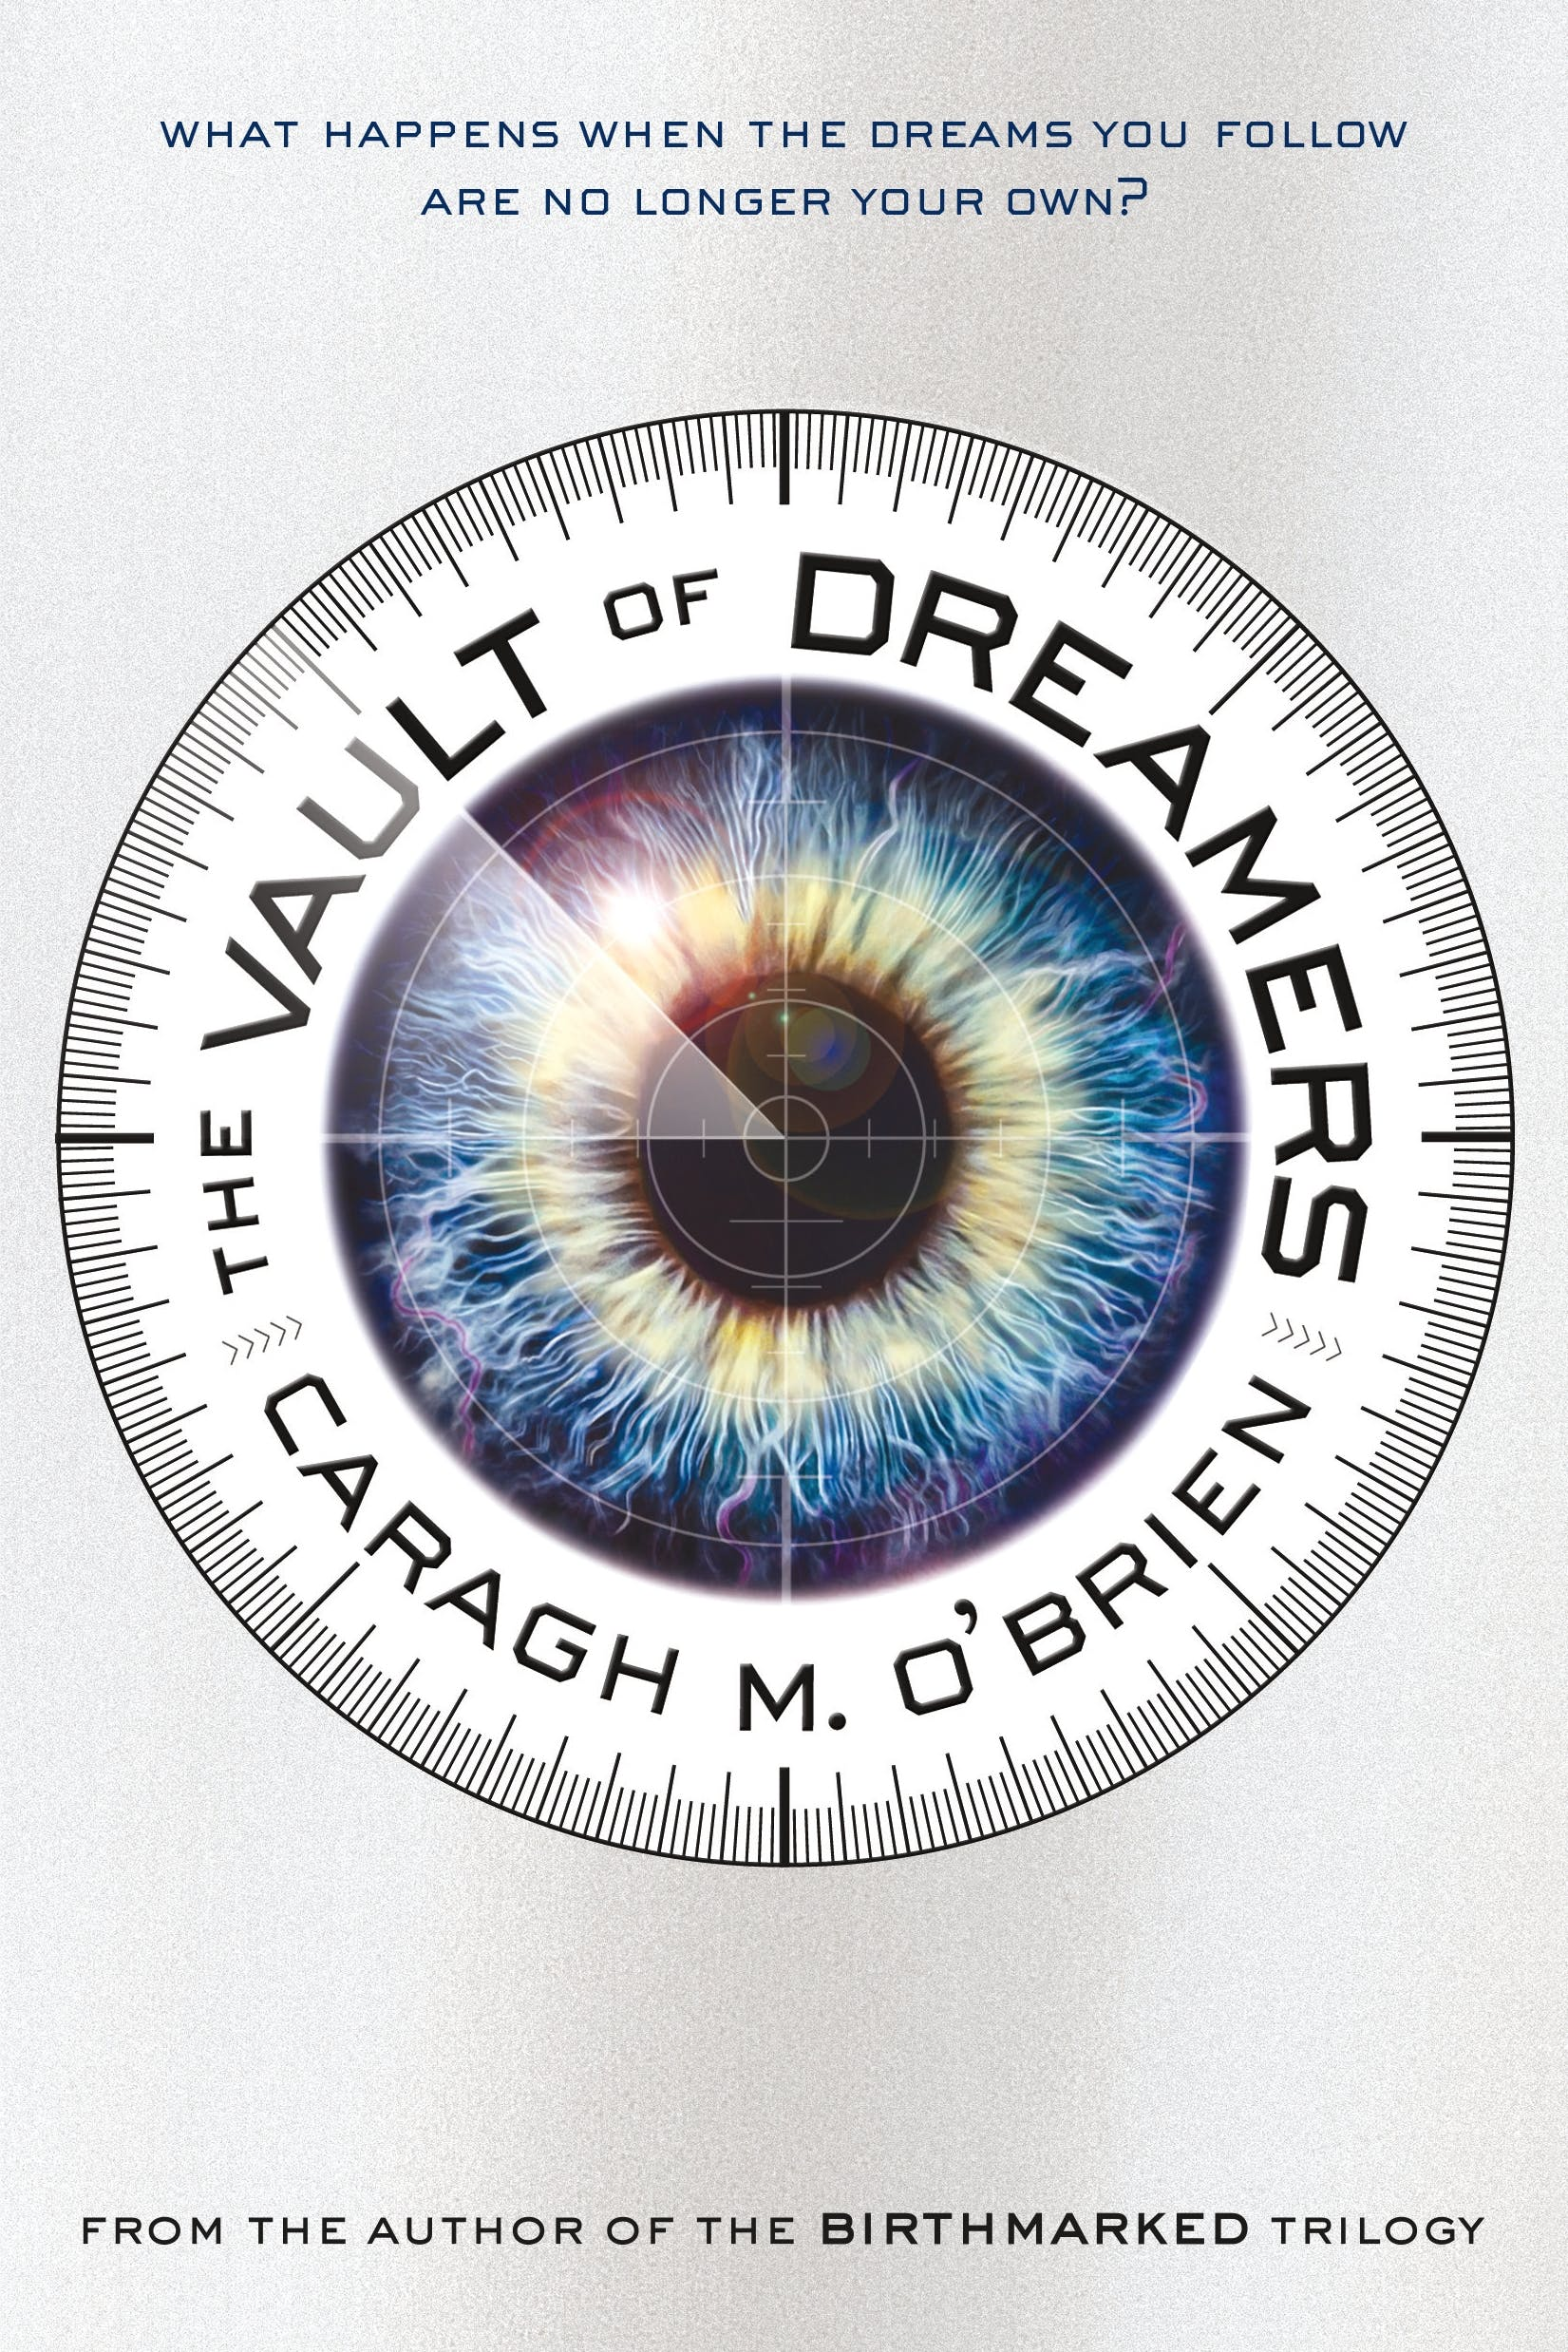 Image of The Vault of Dreamers